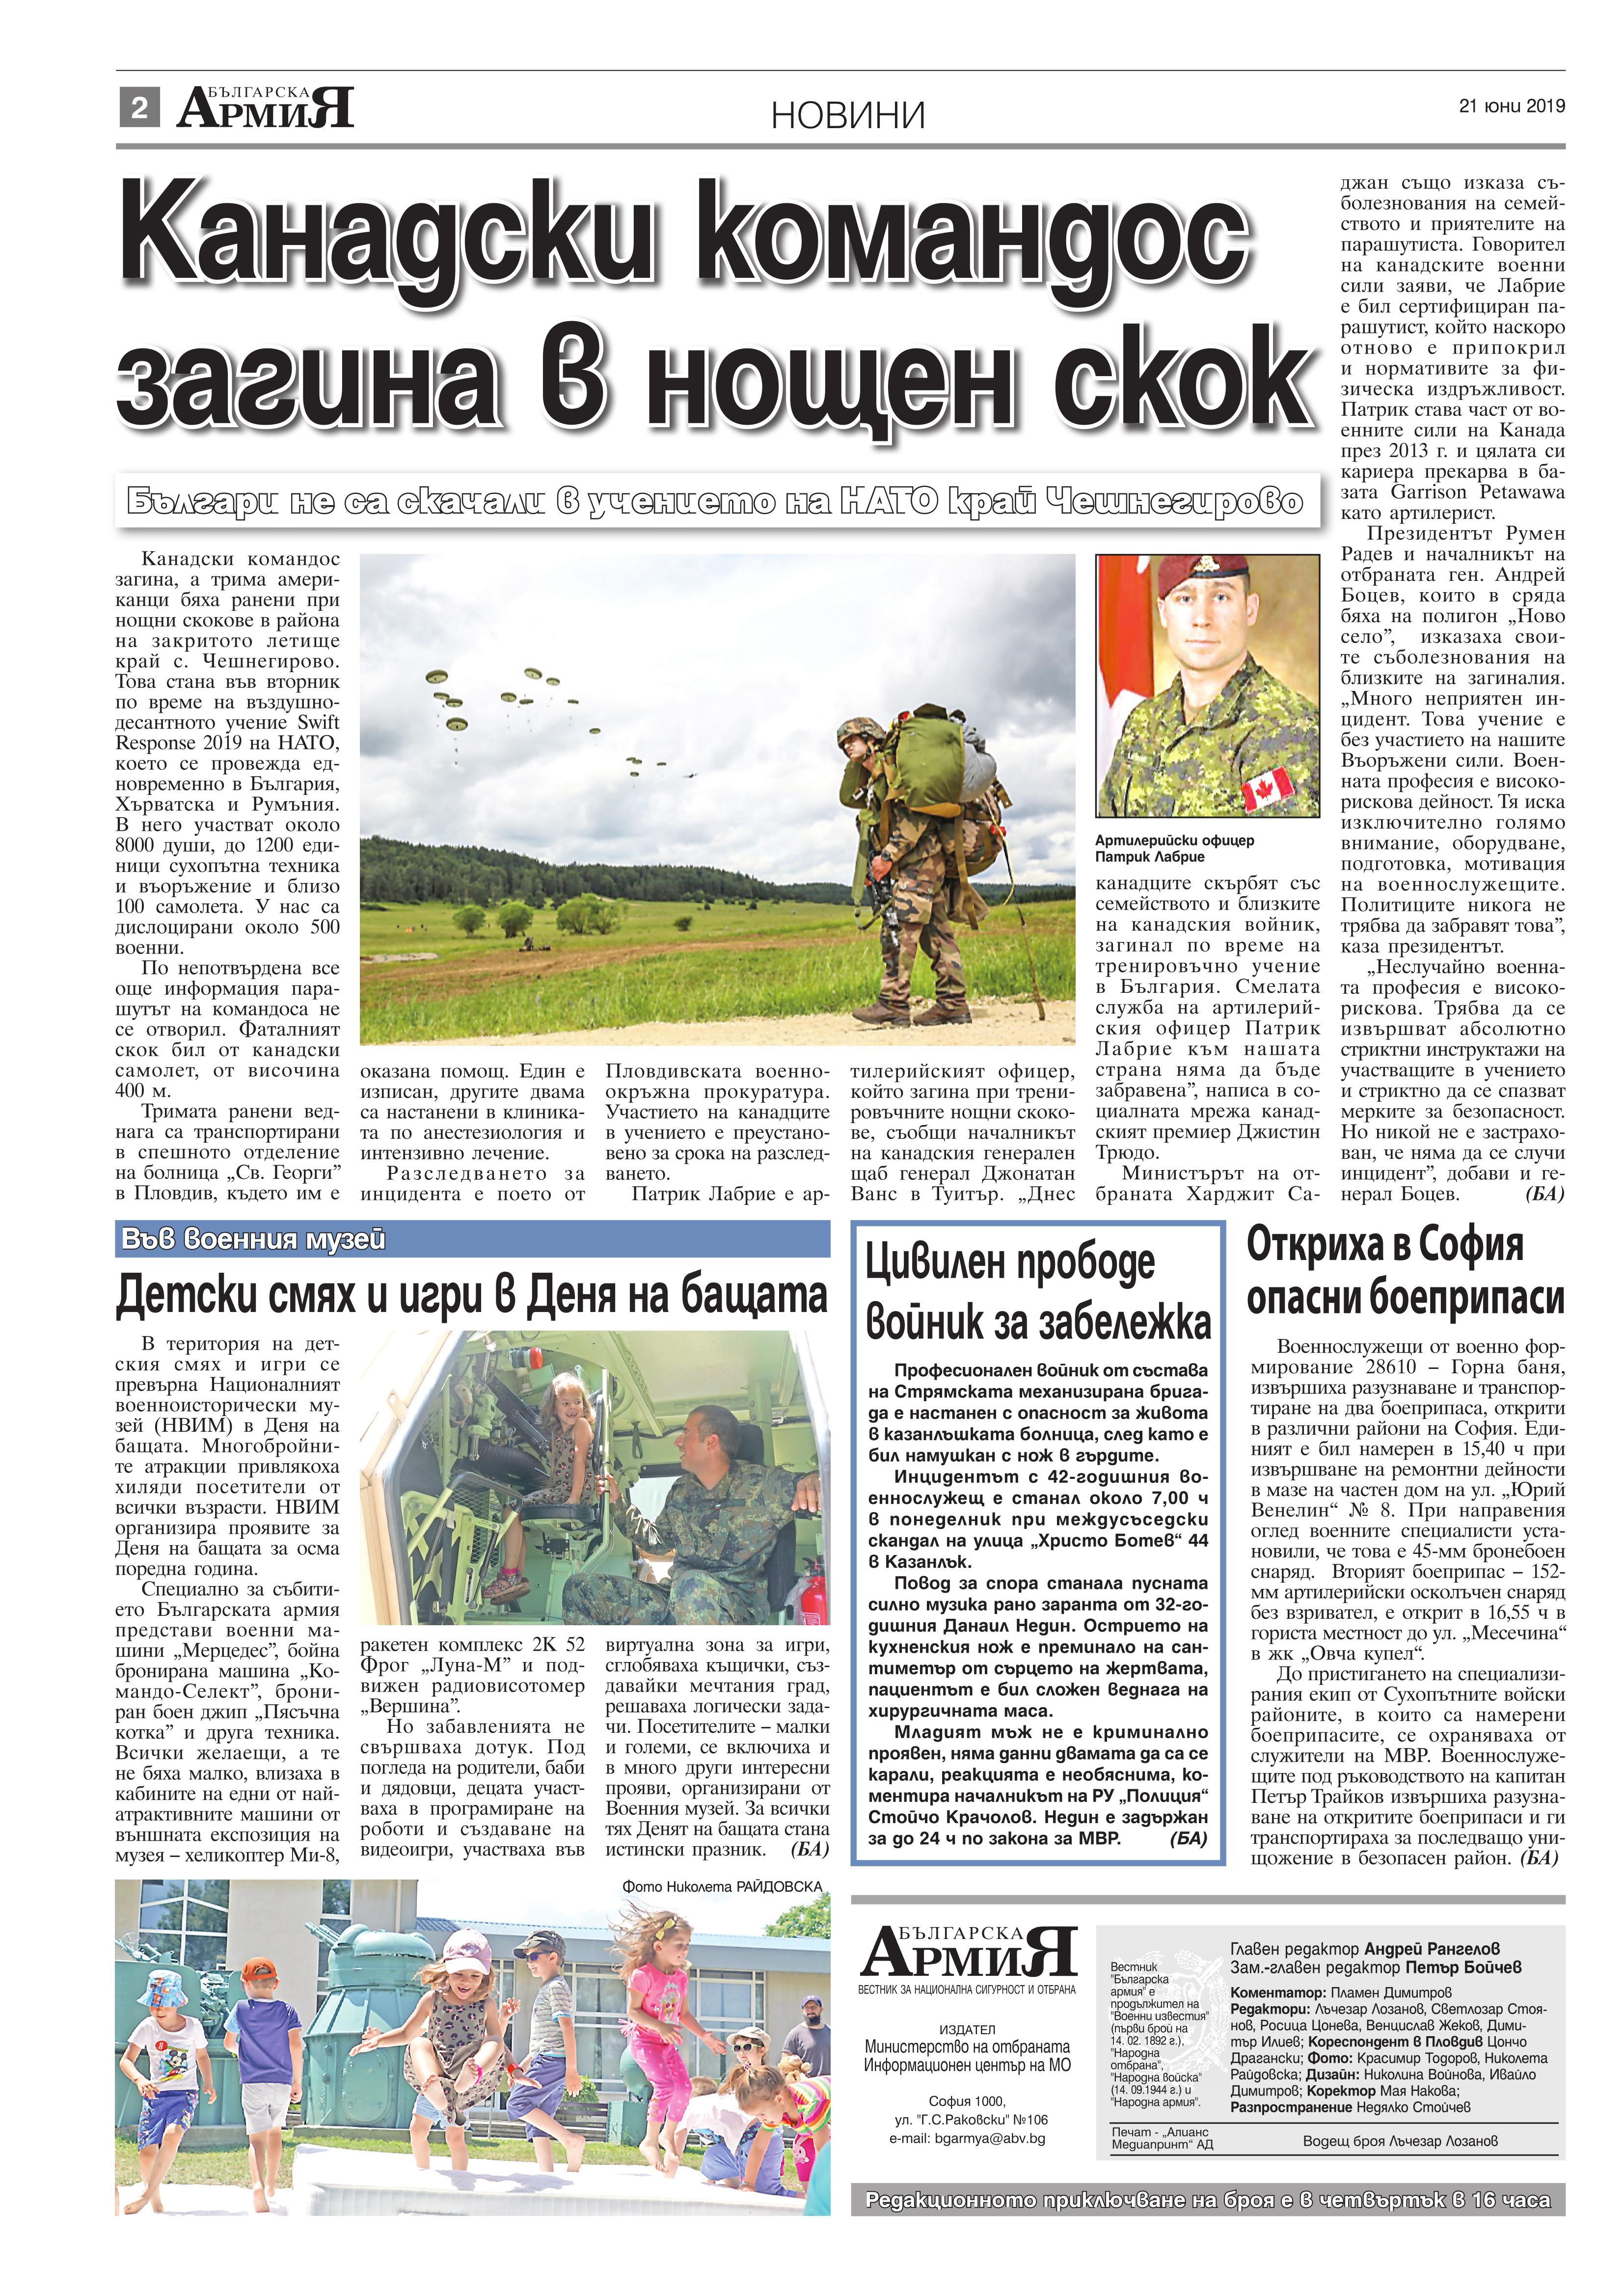 https://www.armymedia.bg/wp-content/uploads/2015/06/02.page1_-96.jpg